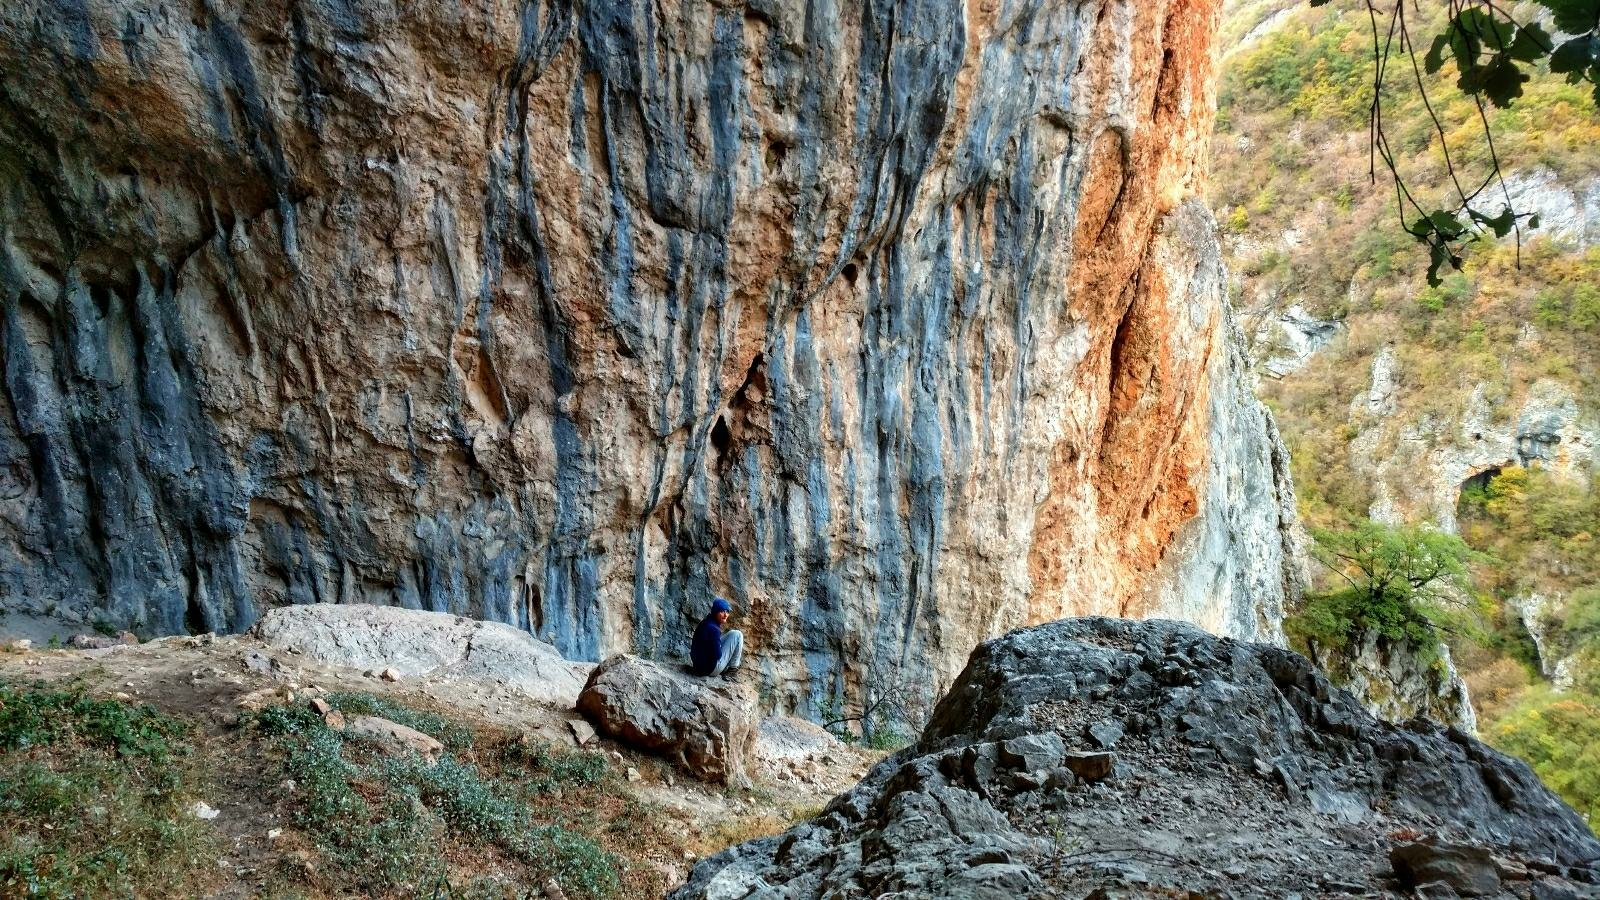 THE CLIMBING CAVE in Mavrovo National Park